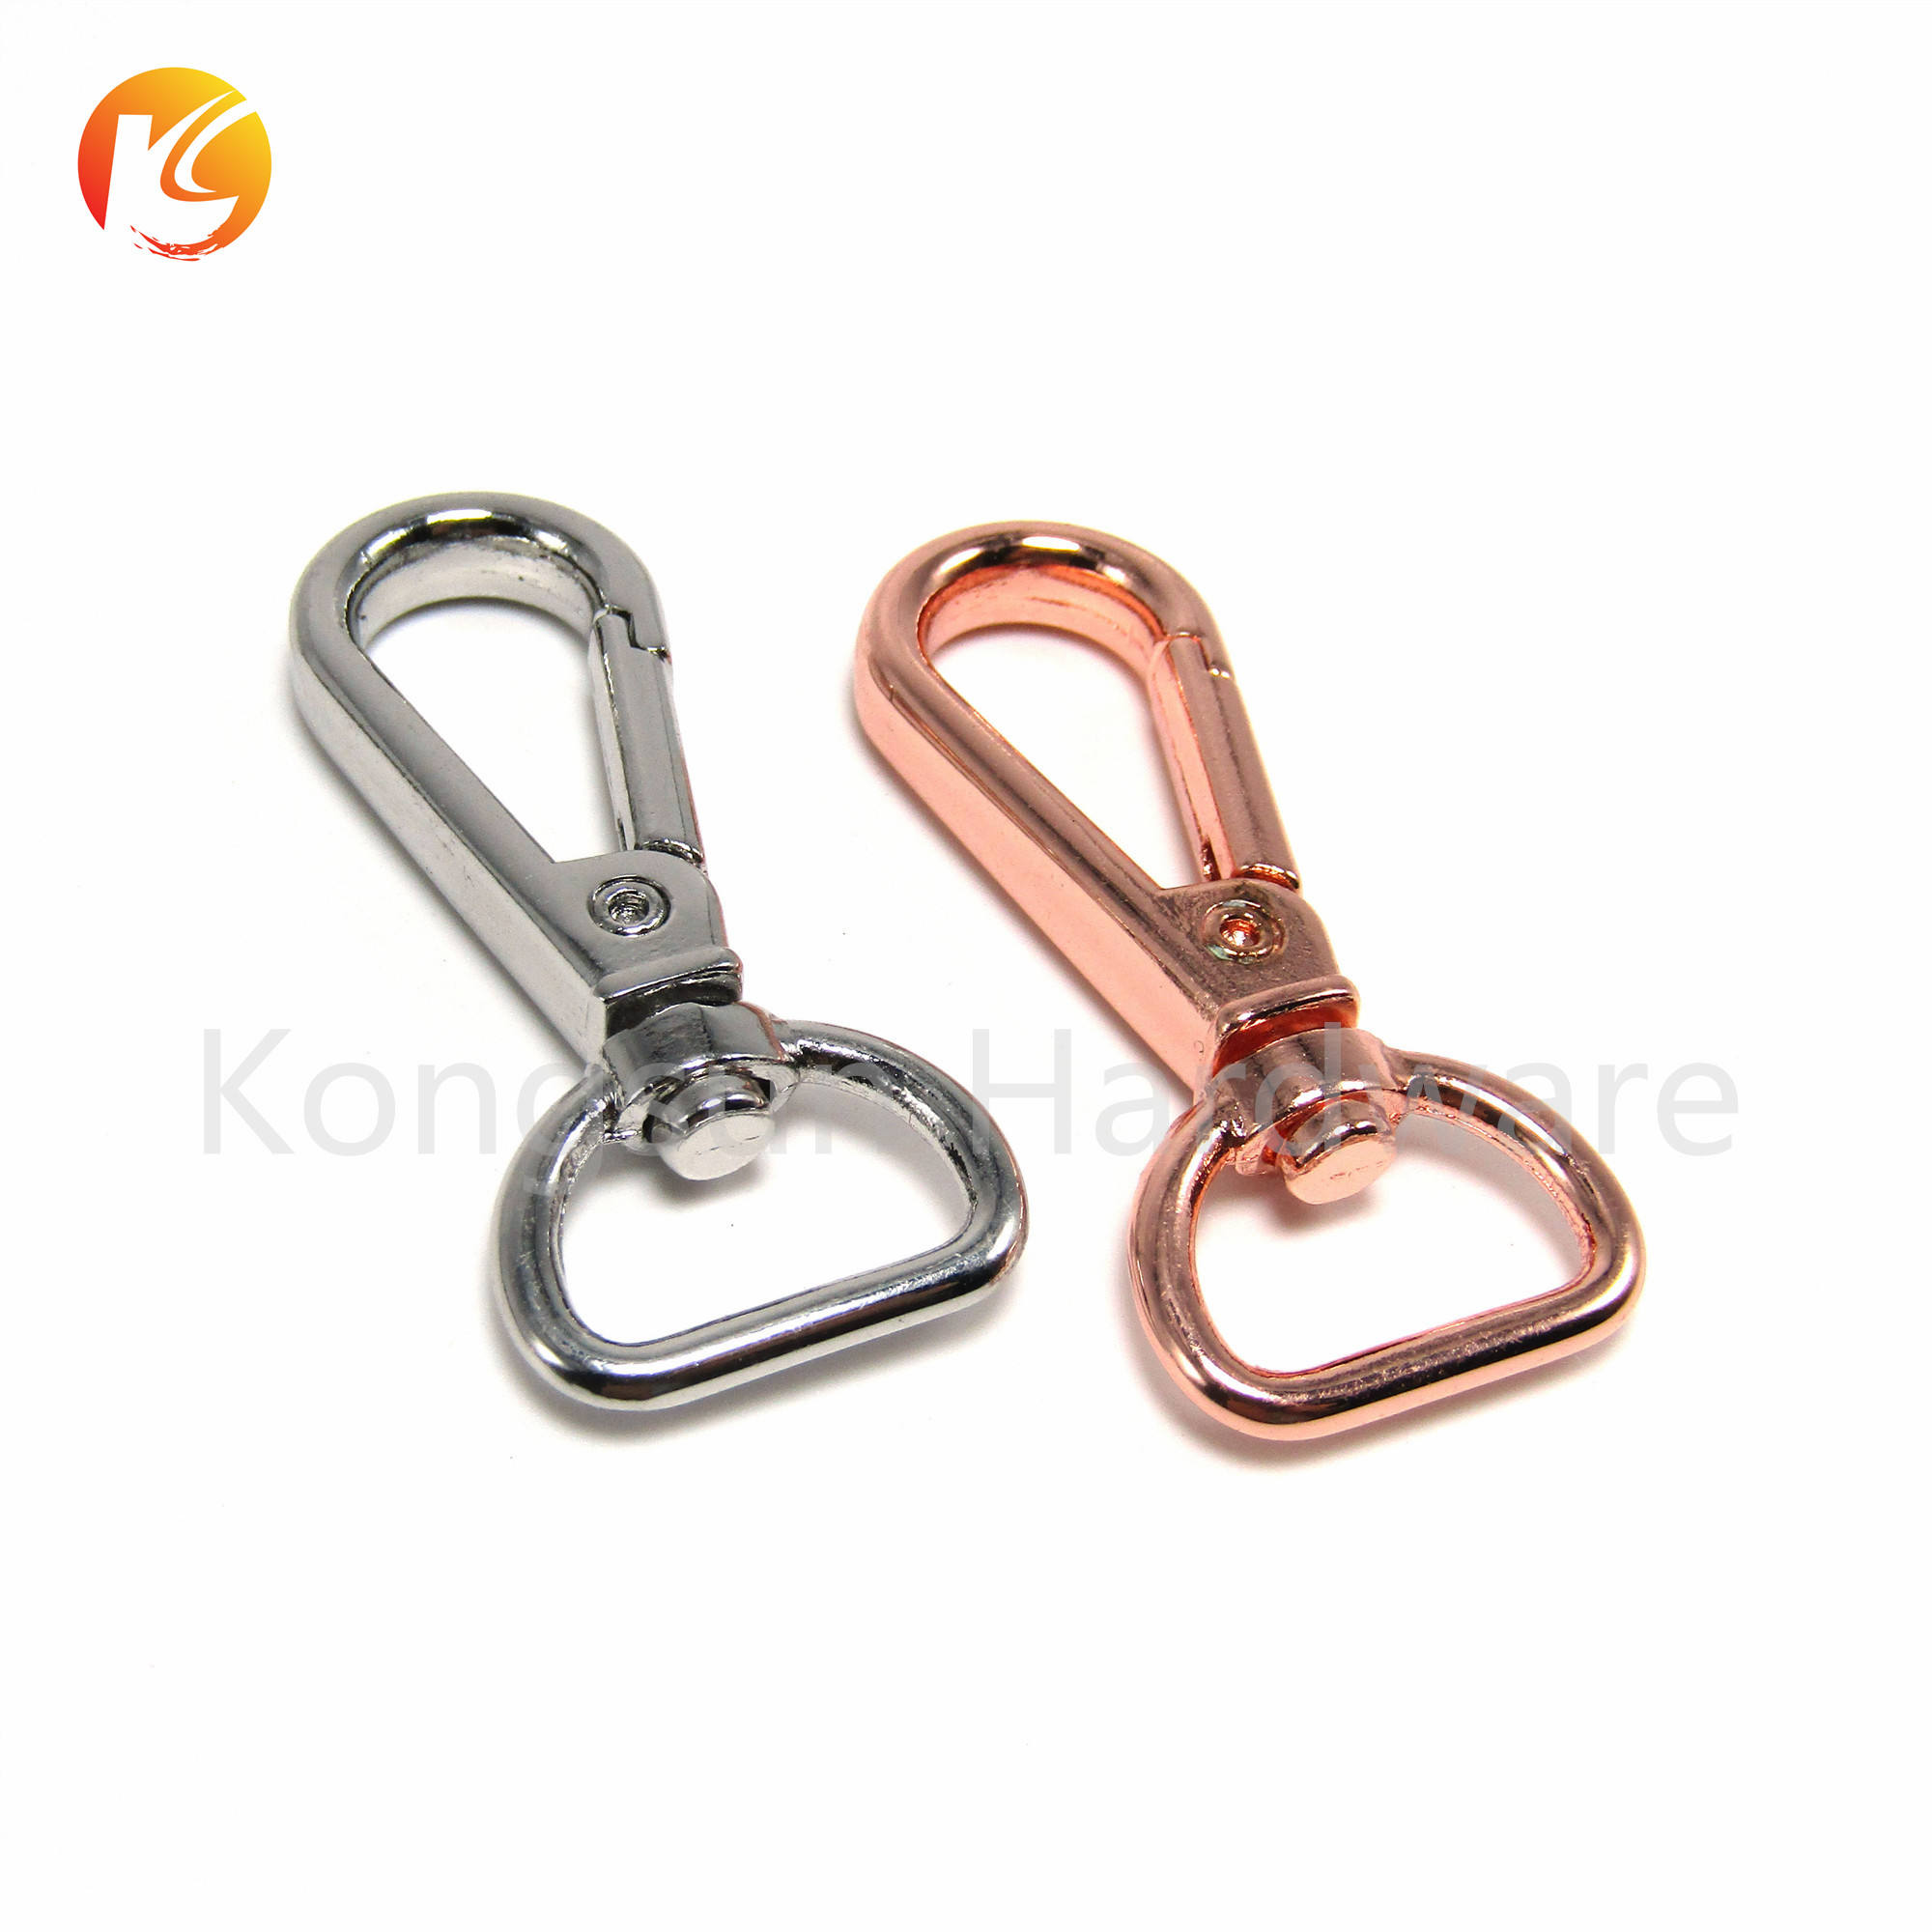 Metal Swivel Trigger Clip 16mm 25mm Dog Lead Leather Craft Snap Hook Rose Gold Silver Leash Snap Lead Clasp